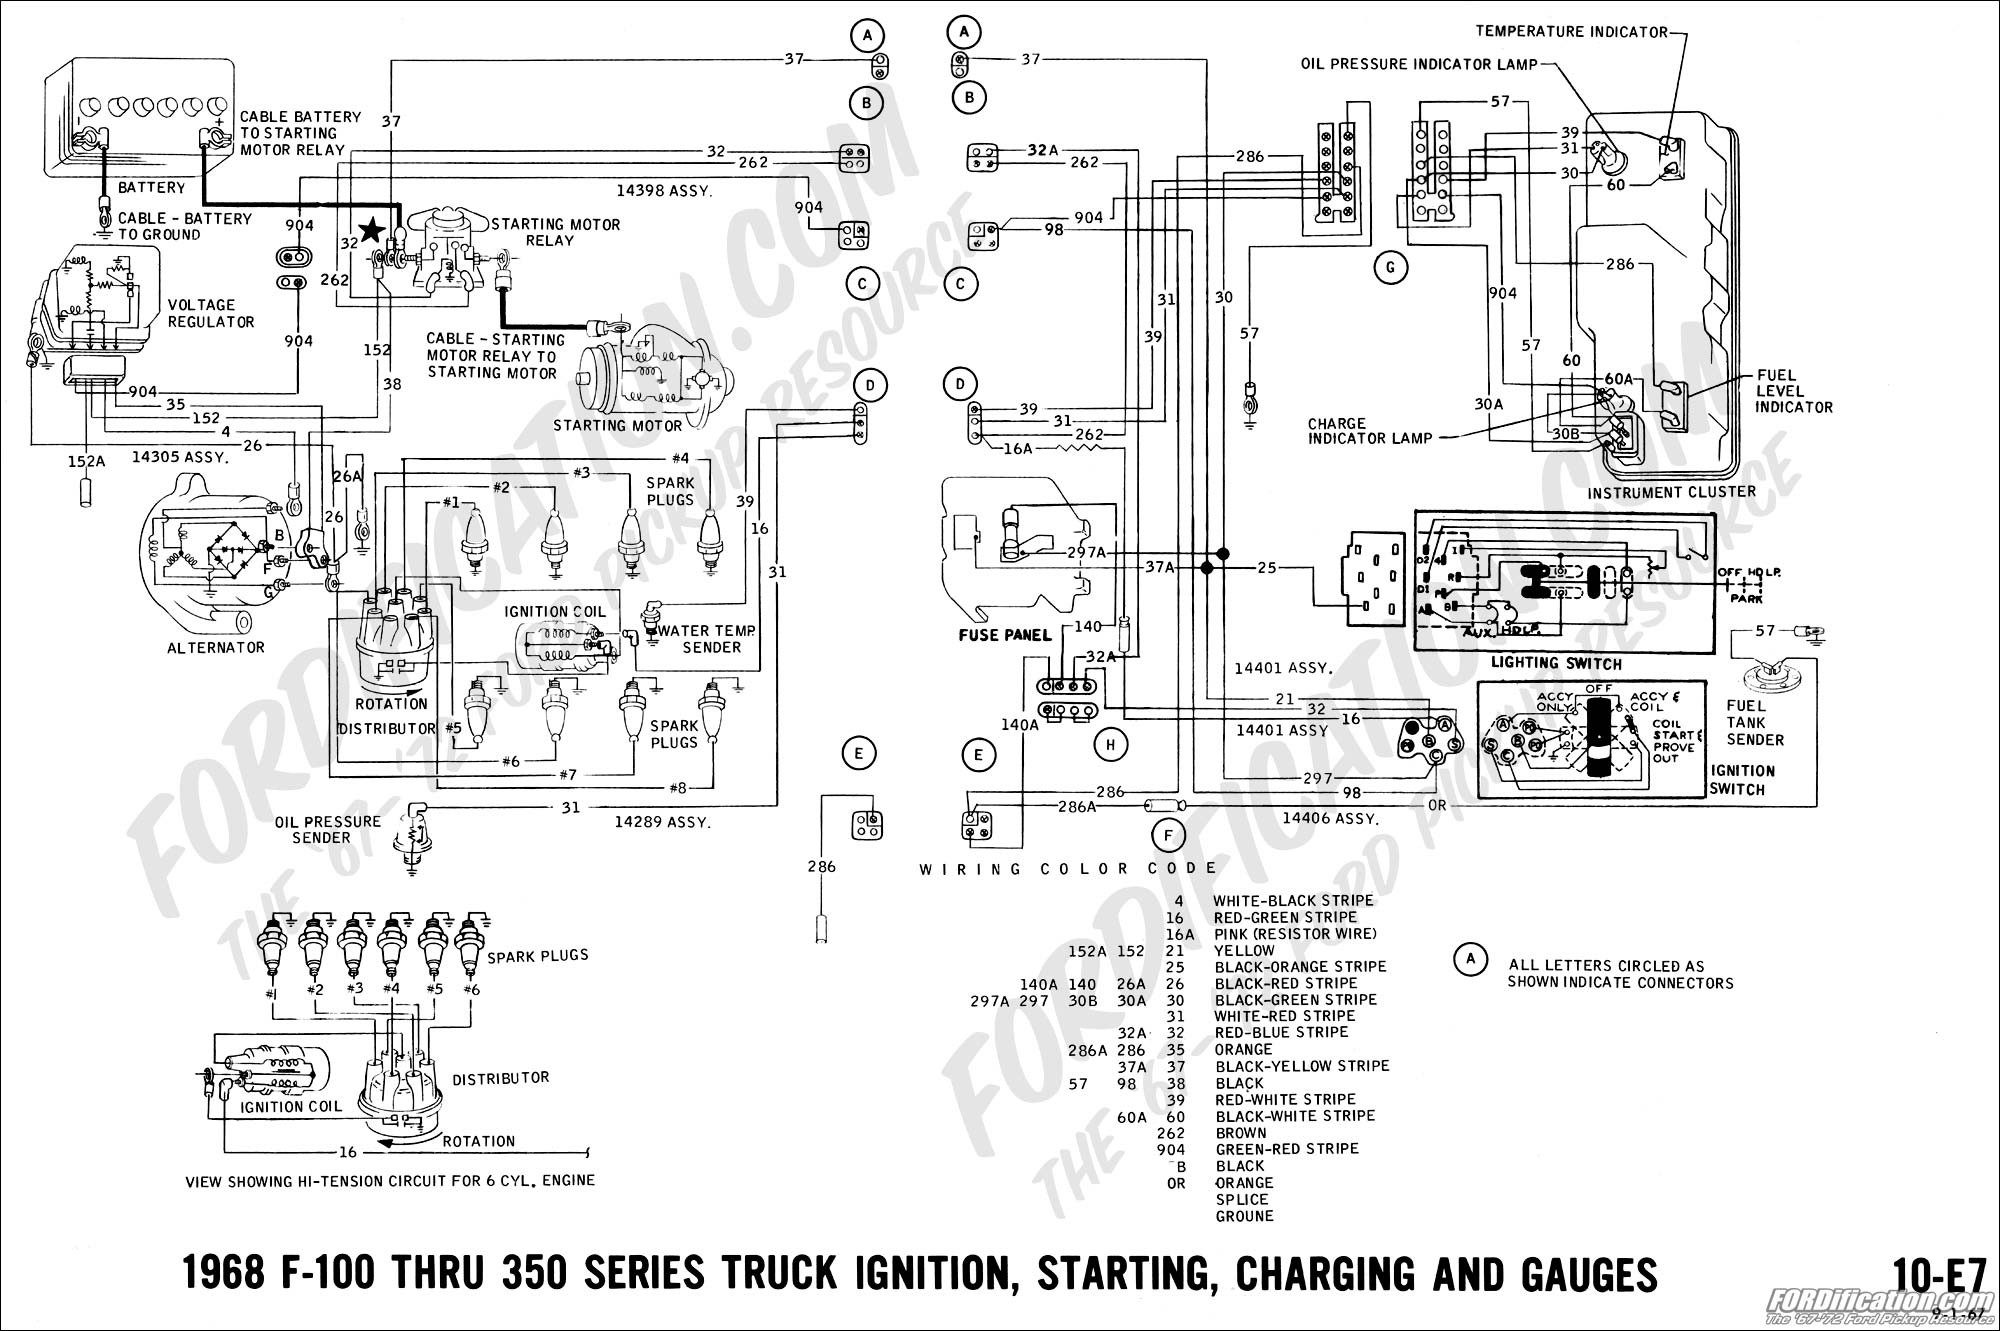 2004 Ford Taurus Engine Diagram Wiring Library 04 2001 Mustang Wiper Motor Also Meke Of